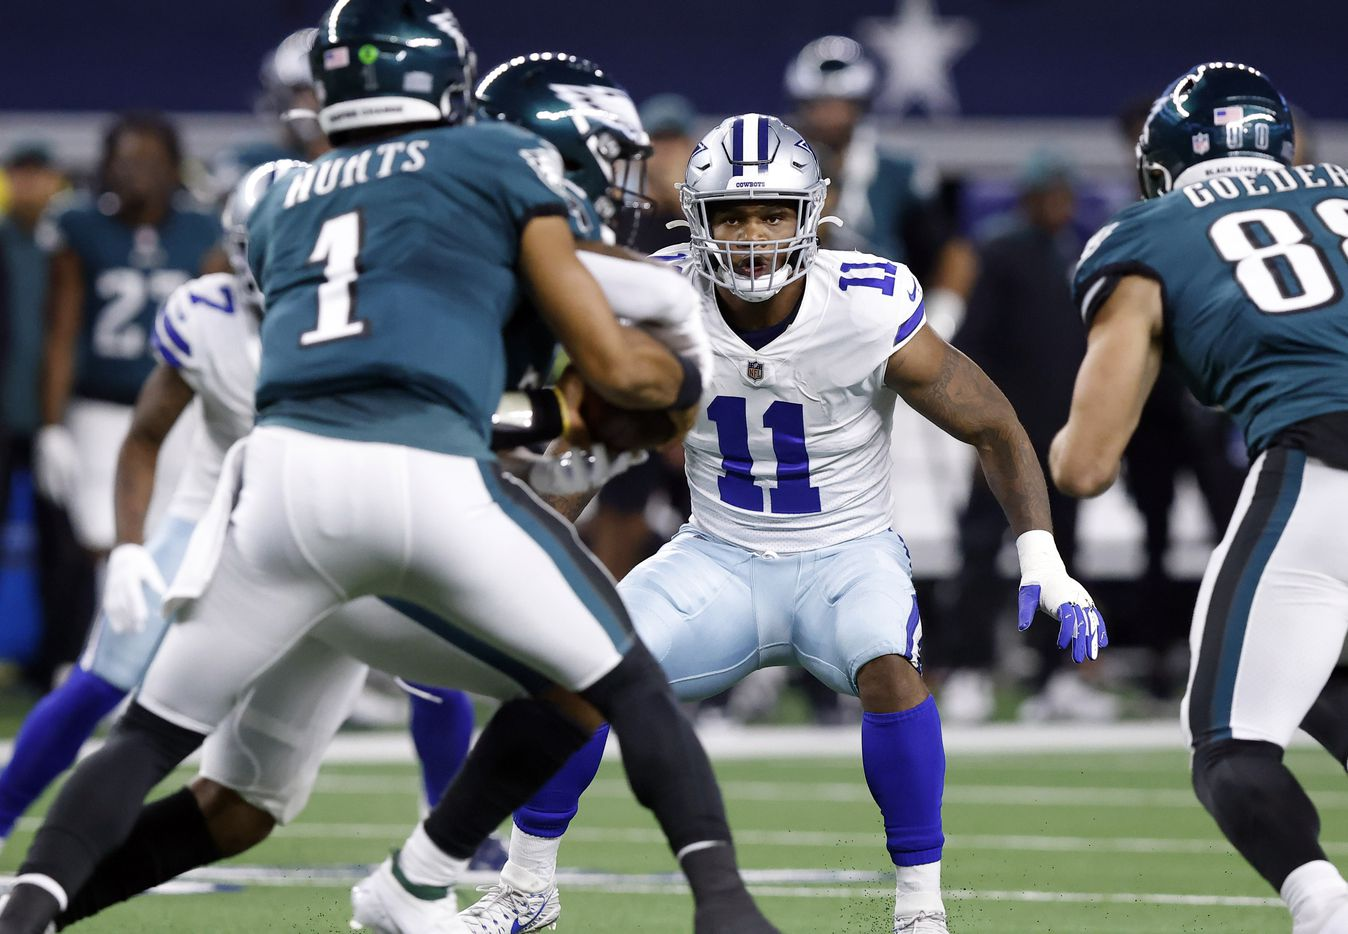 Dallas Cowboys linebacker Micah Parsons (11) looks to cover a fake handoff by Philadelphia Eagles quarterback Jalen Hurts (1) during the second quarter at AT&T Stadium in Arlington, Monday, September 27, 2021. (Tom Fox/The Dallas Morning News)